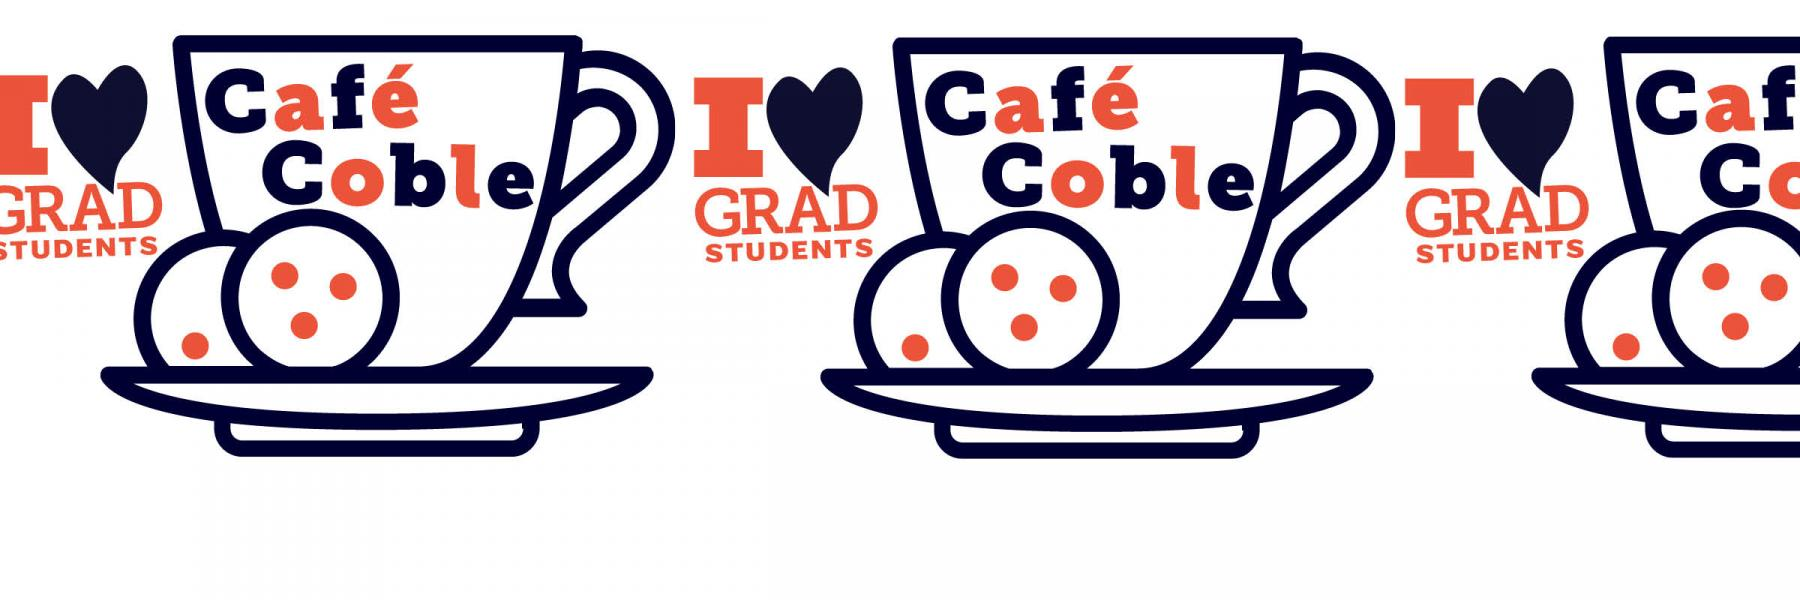 Graduate program 2019 clipart jpg free The Graduate College at the University of Illinois at Urbana-Champaign jpg free